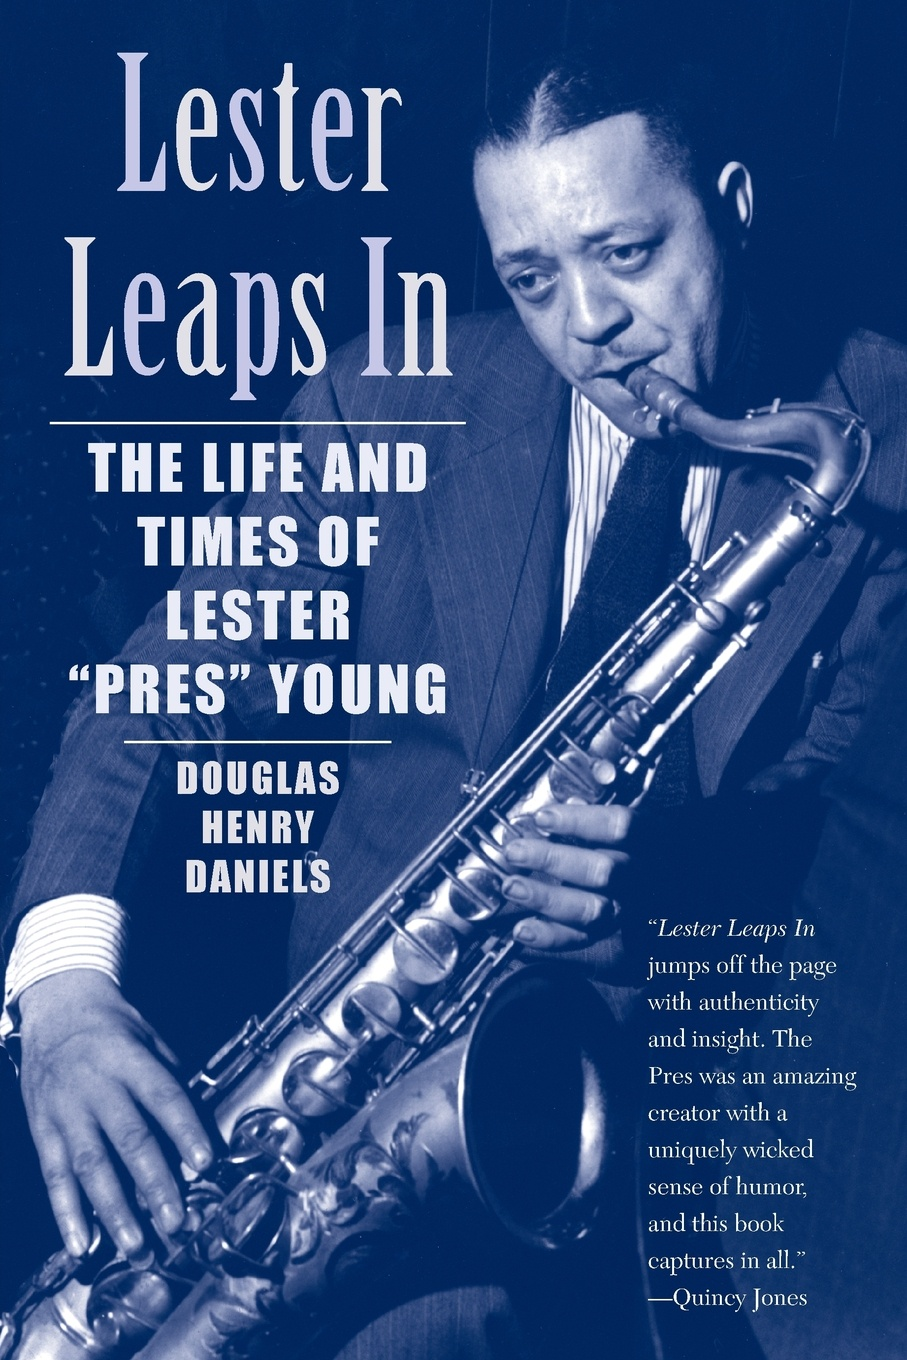 Douglas H. Daniels Lester Leaps In. The Life and Times of Pres Young